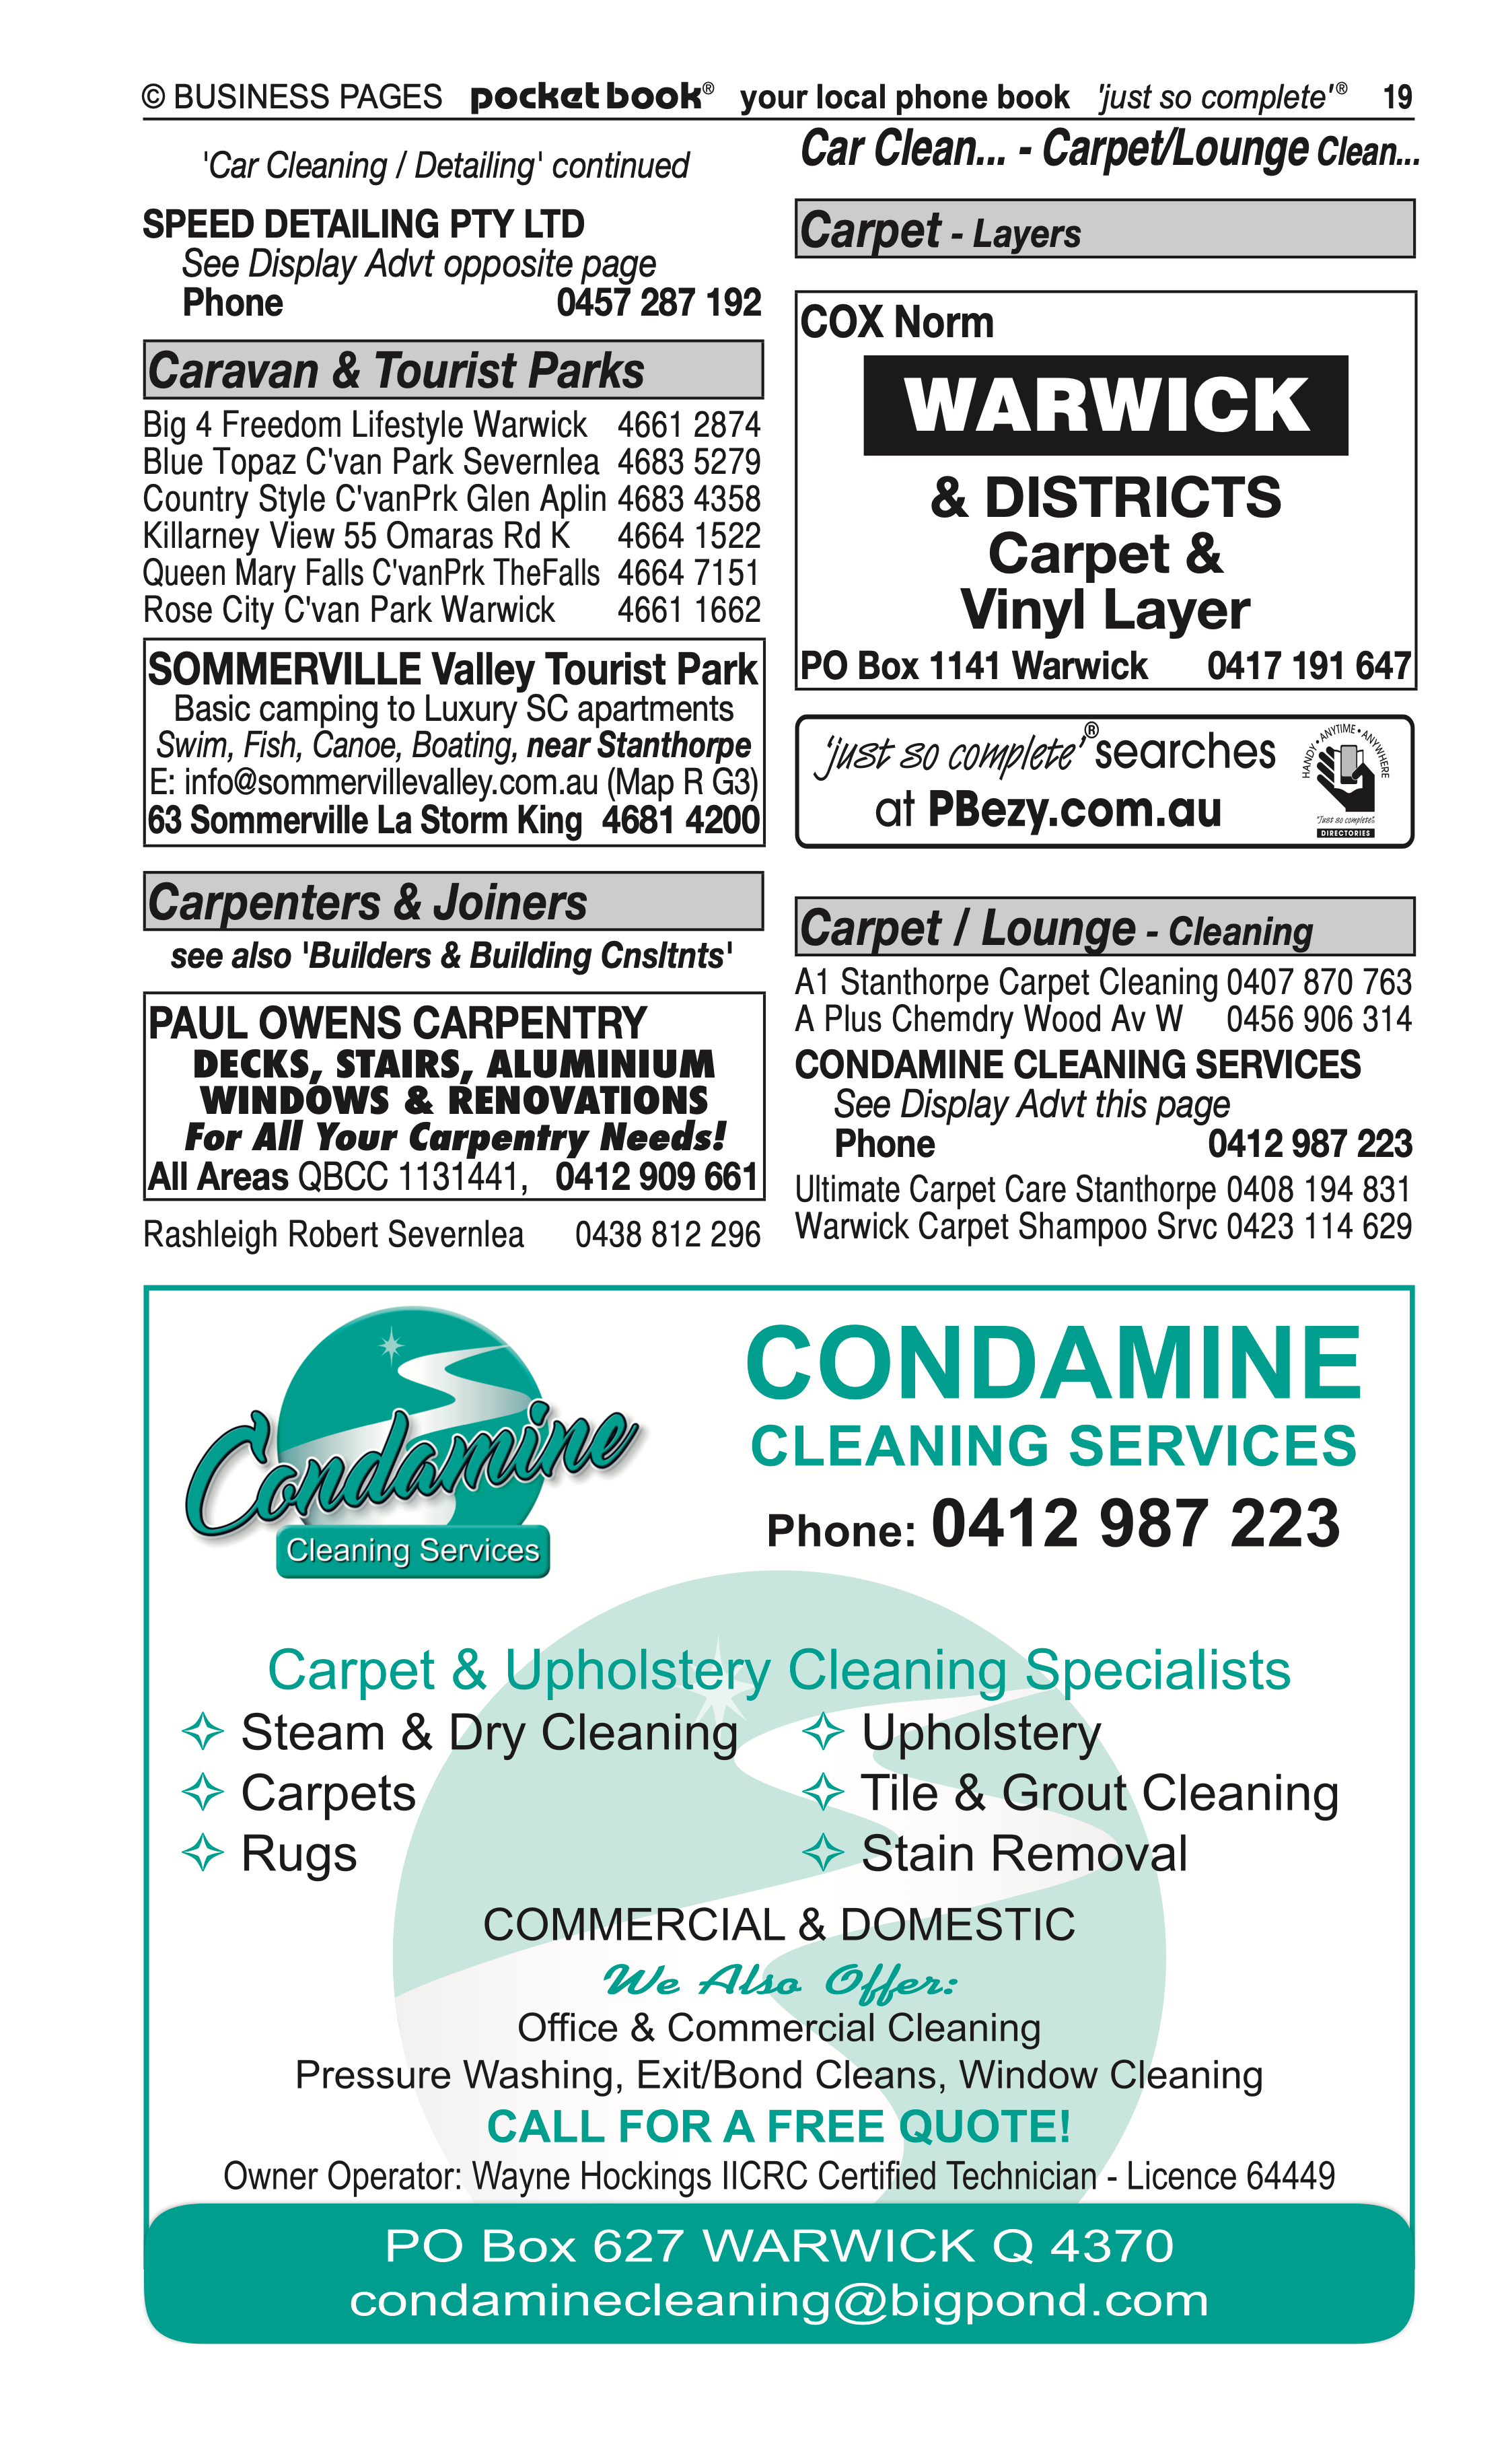 Speed Detailing Pty Ltd | Agricultural – Machinery & Services in Warwick | PBezy Pocket Books local directories - page 19